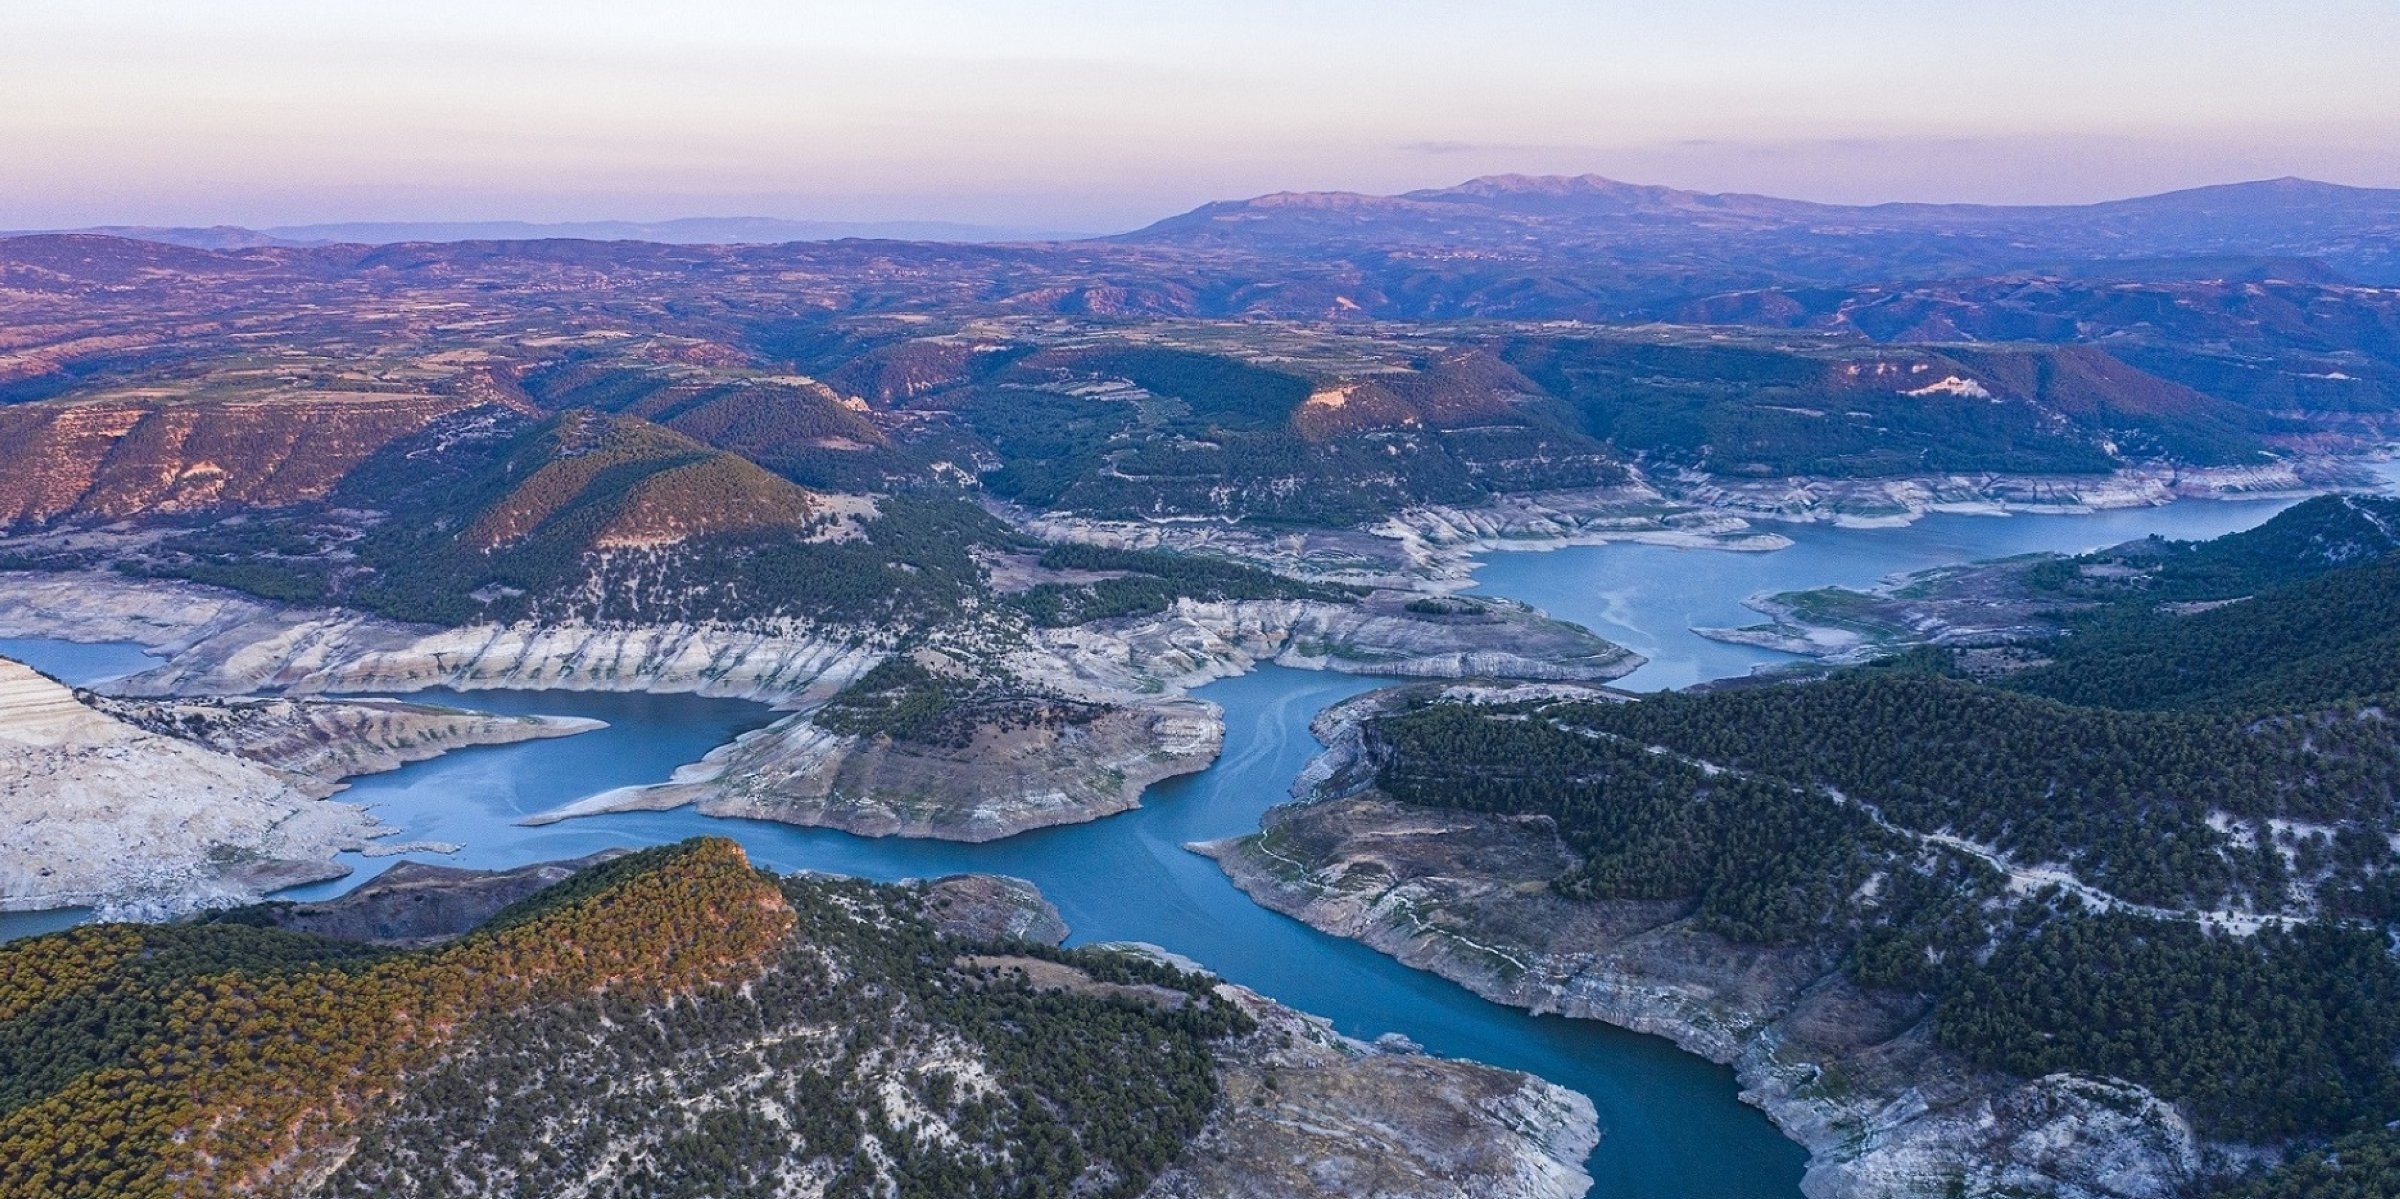 WWF Turkey starts campaign to combat water scarcity, save Meander